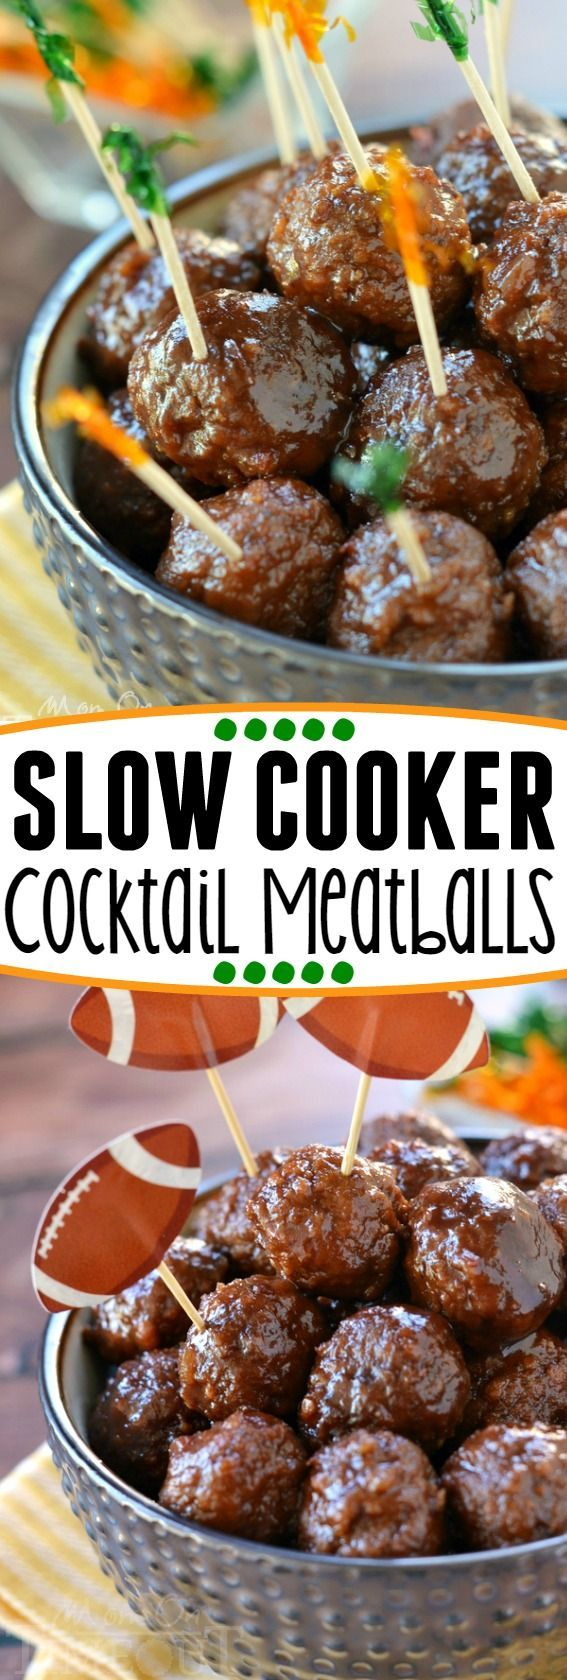 The best cocktail meatballs ever! These Slow Cooker Cocktail Meatballs are made with just three ingredients! Guaranteed to be a hit at your next party!